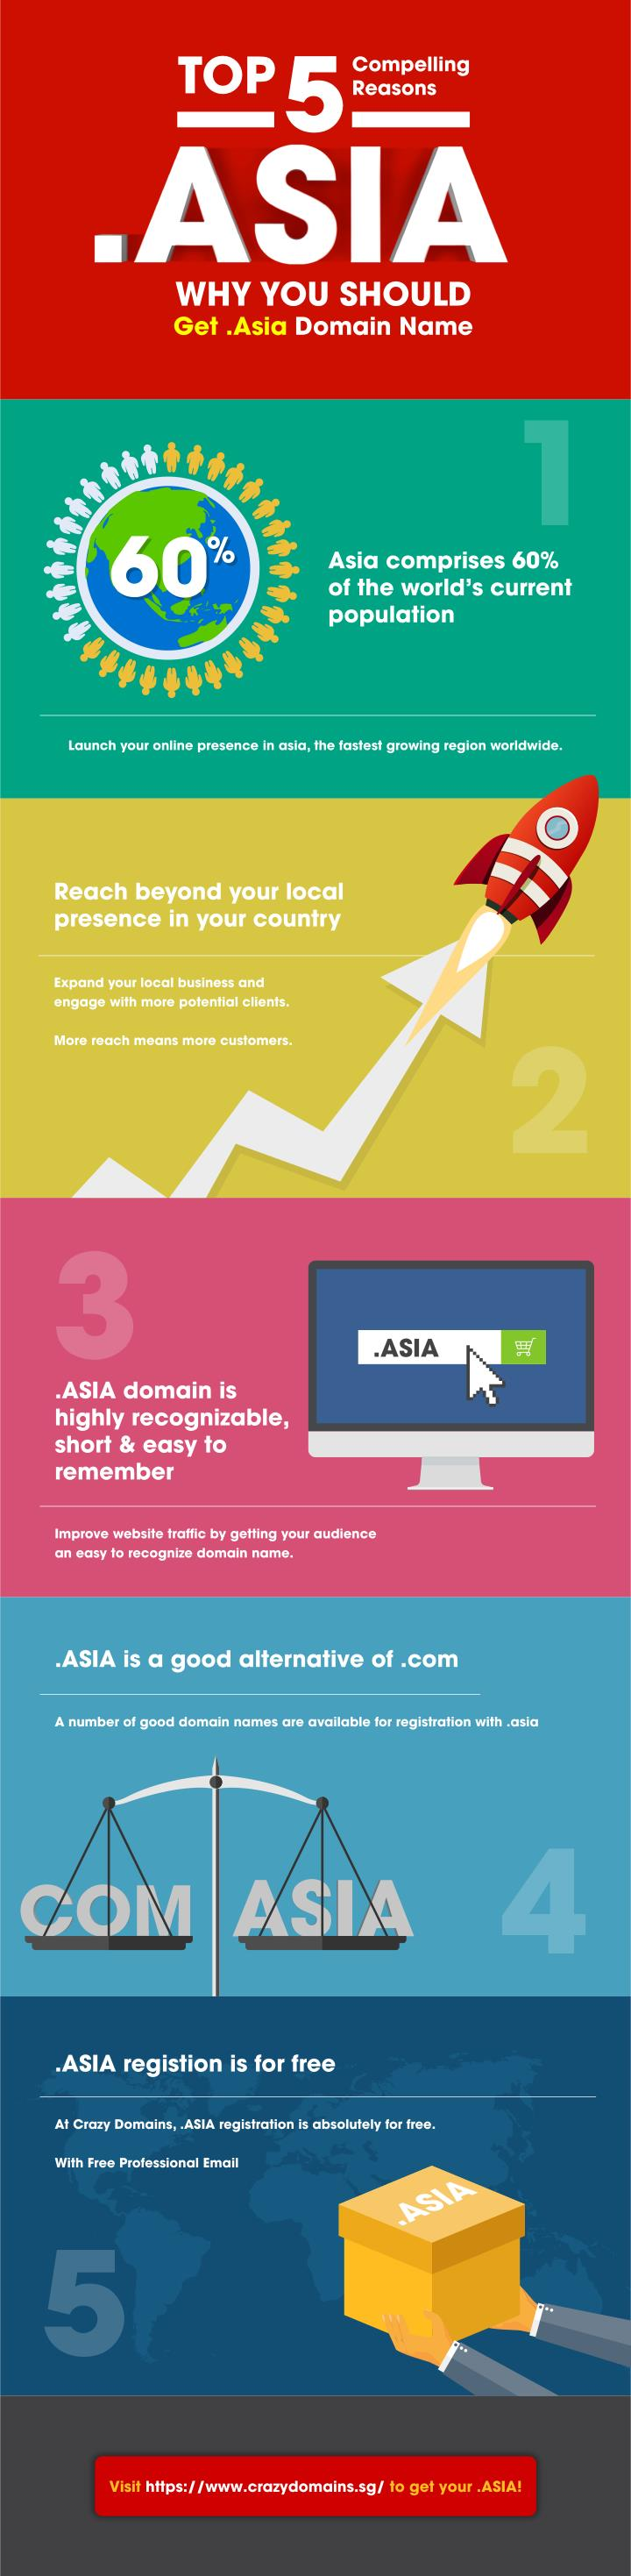 Free asia domain at crazydomains sg